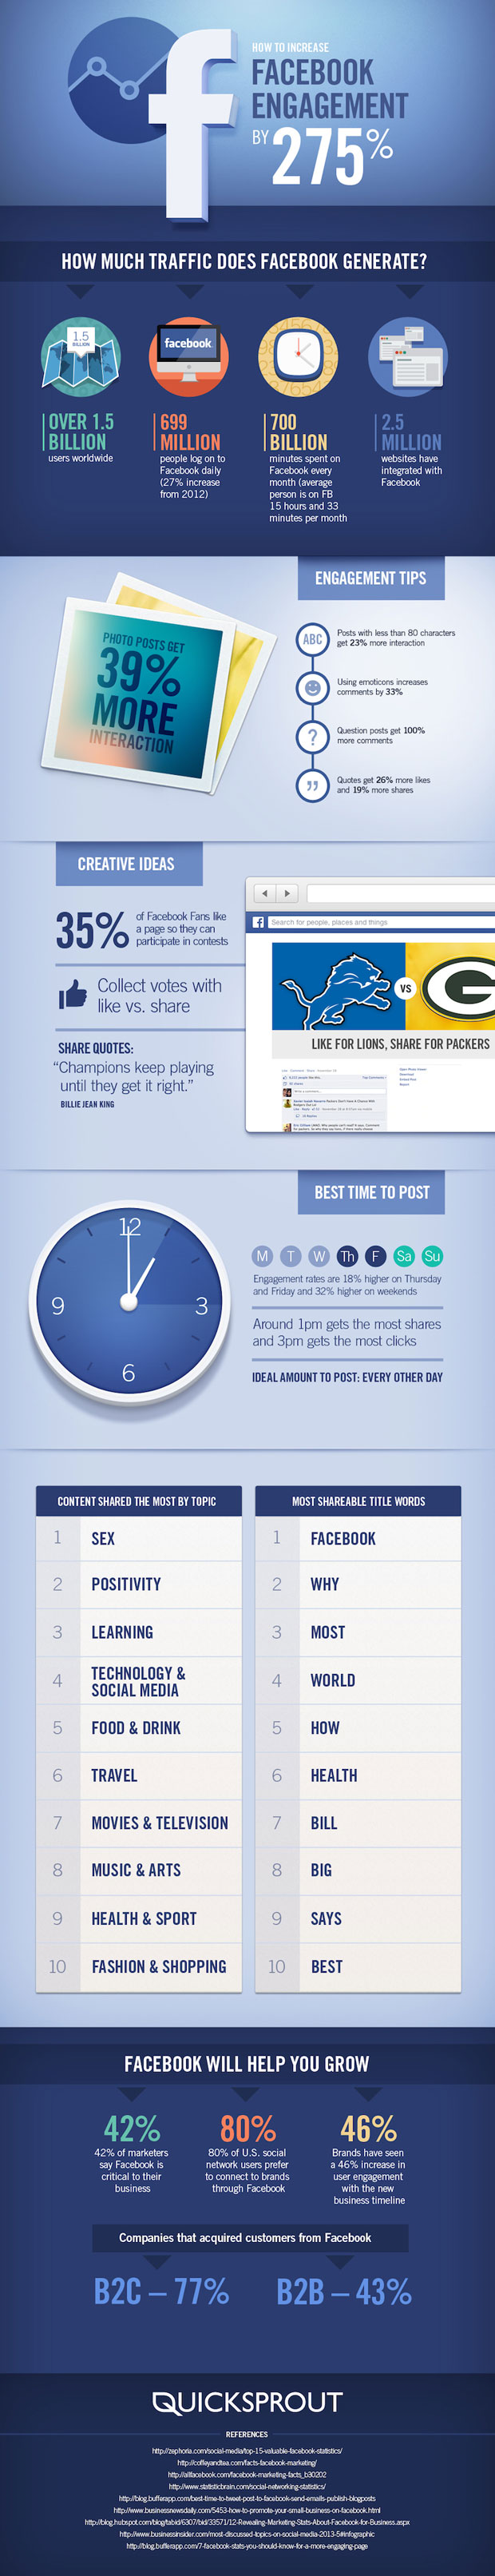 How to Increase Facebook Engagement by 275%: Infographic